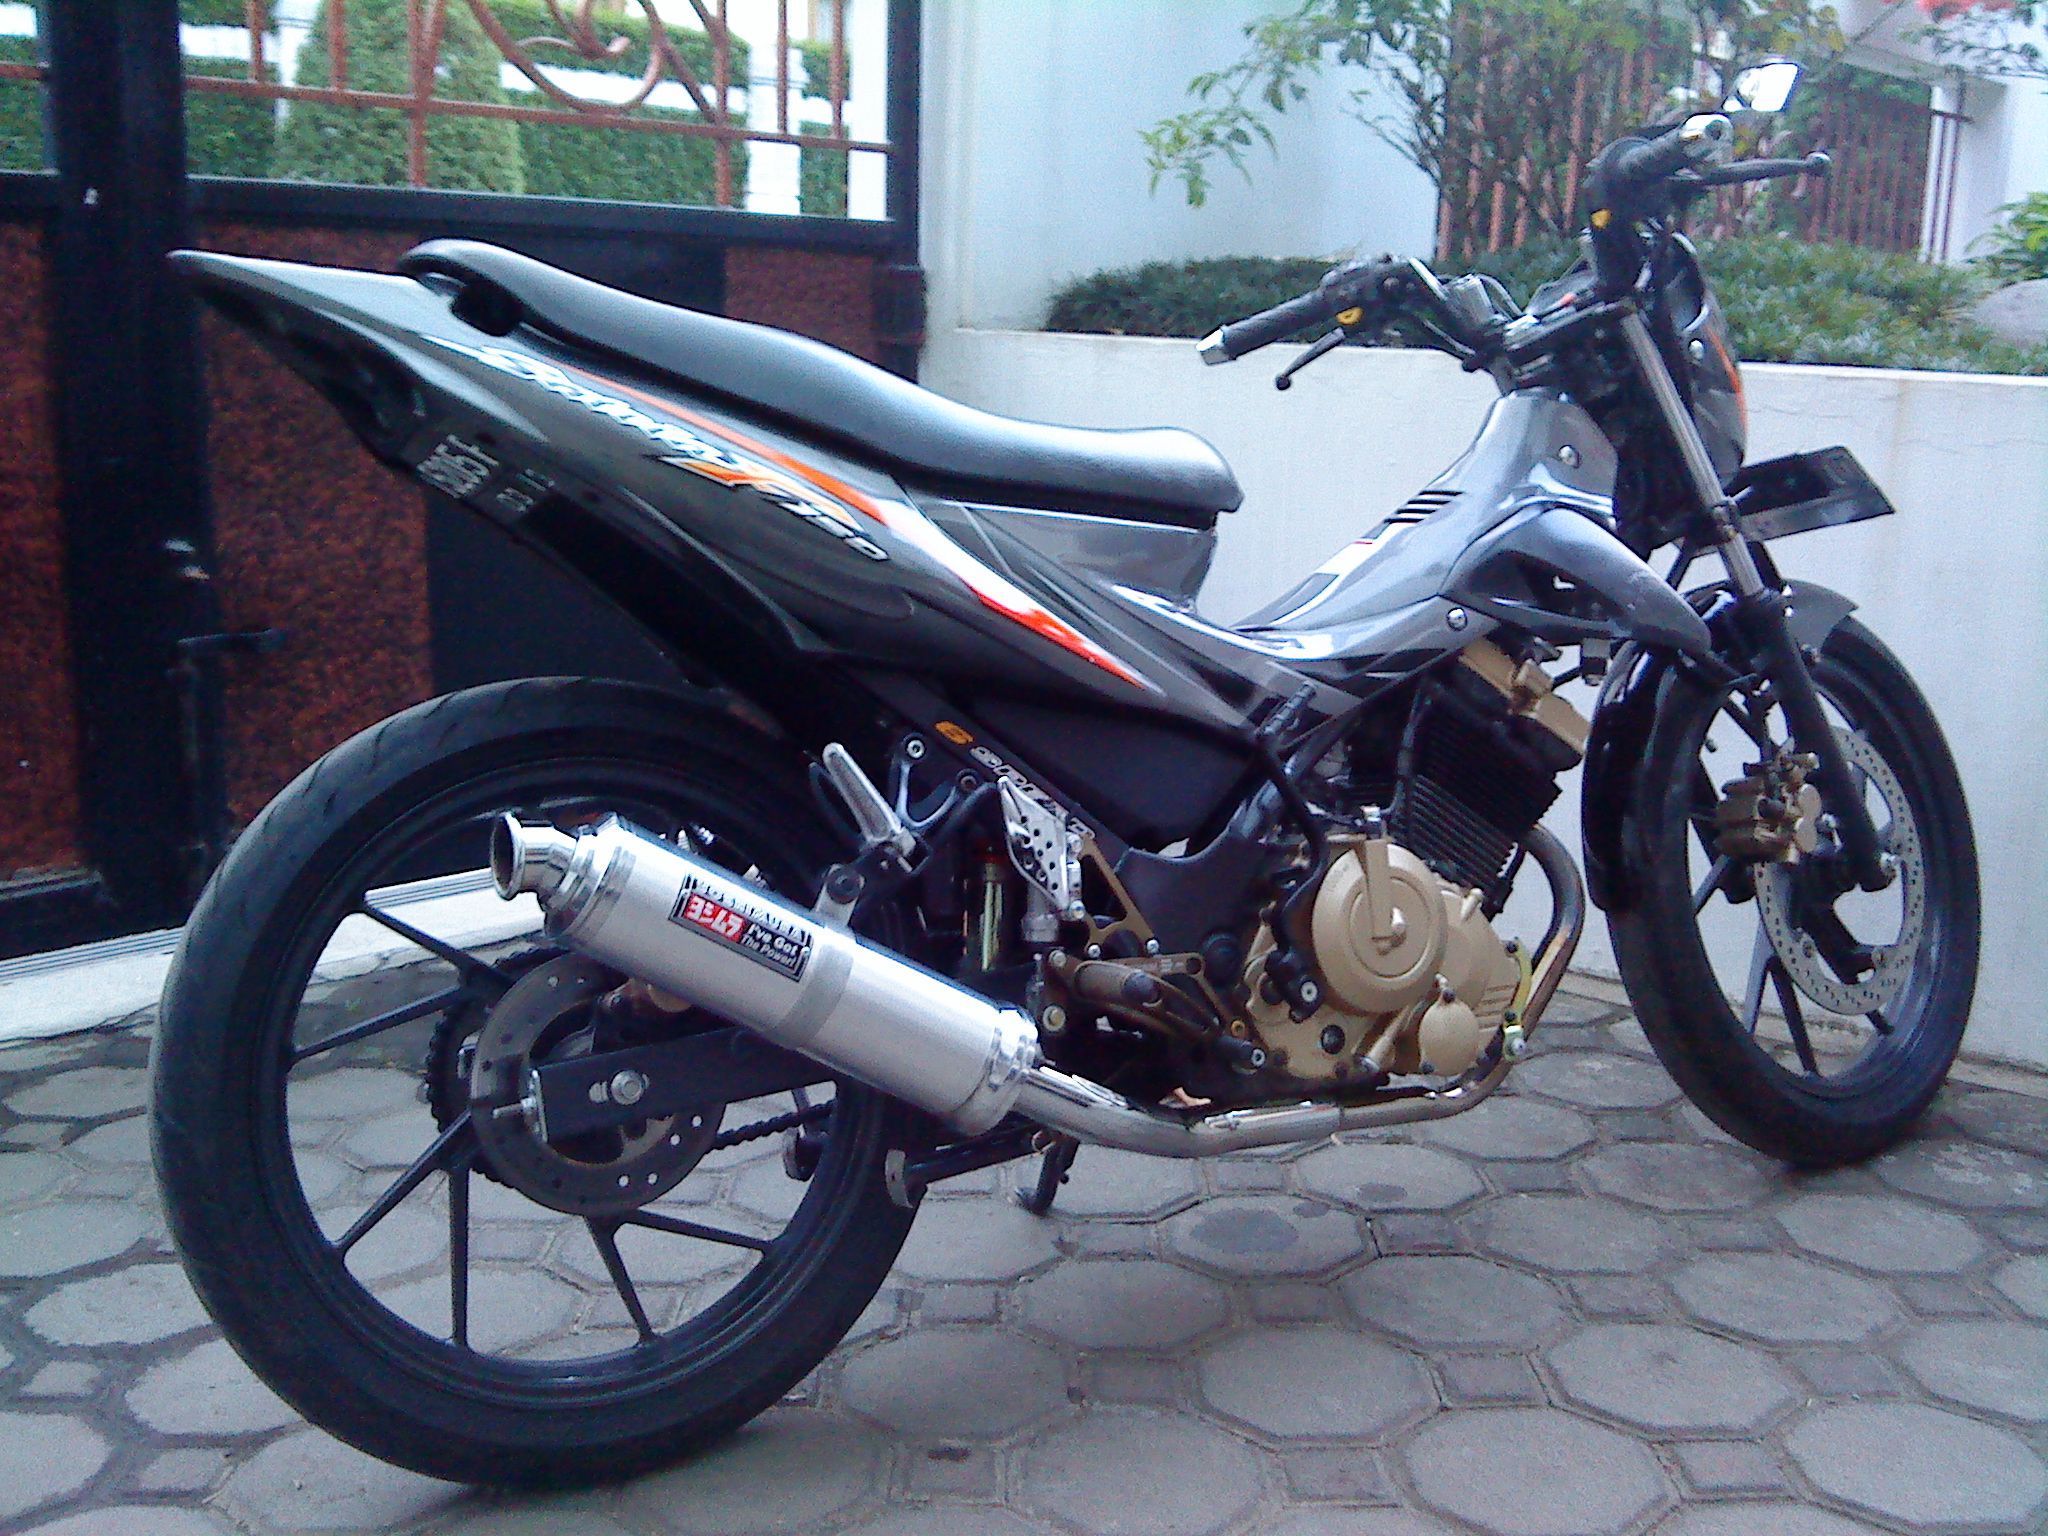 MODIF SATRIA FU 150 My Simple Journey